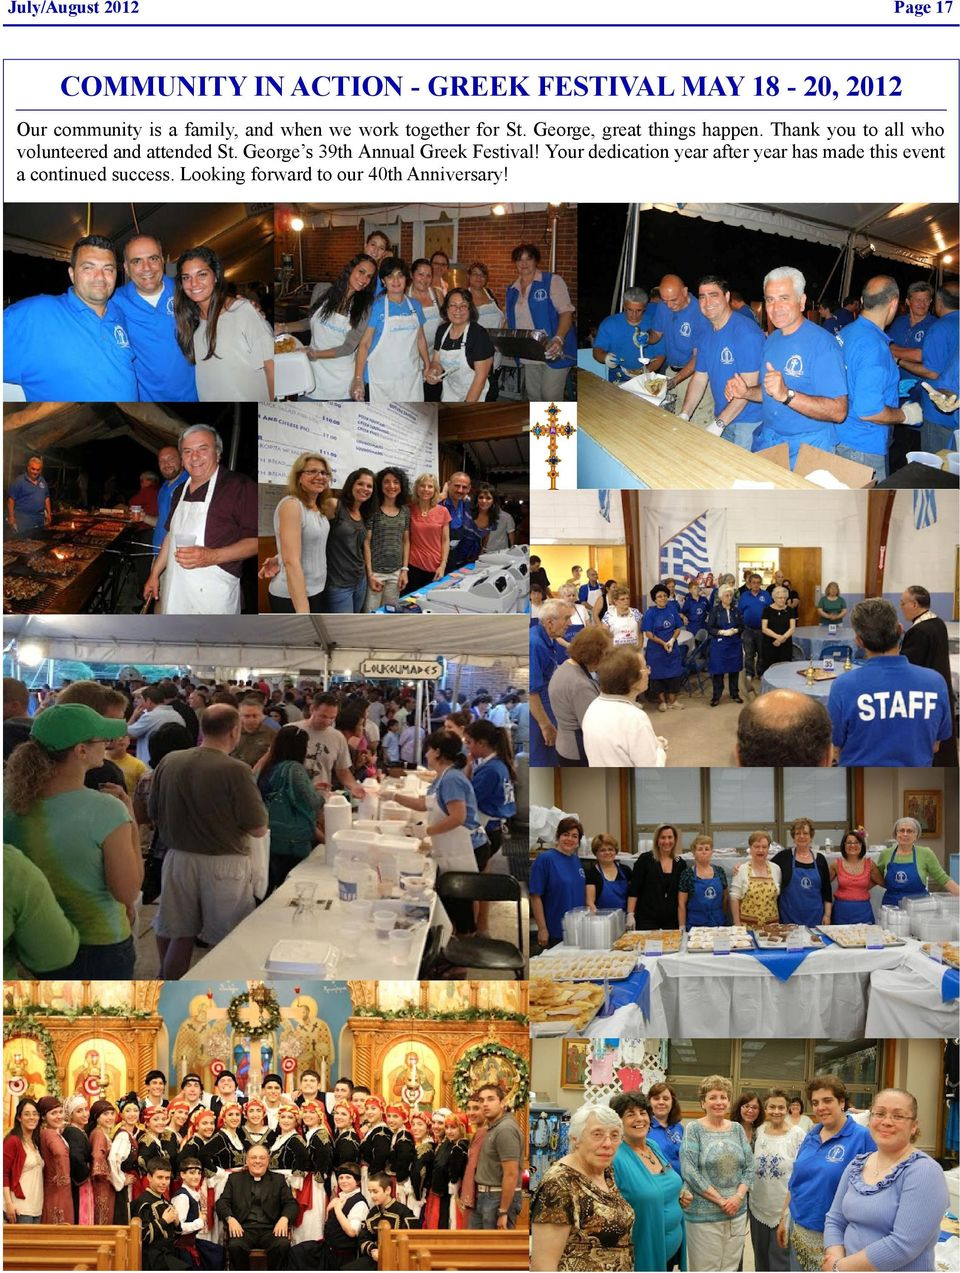 Thank you to all who volunteered and attended St. George s 39th Annual Greek Festival!